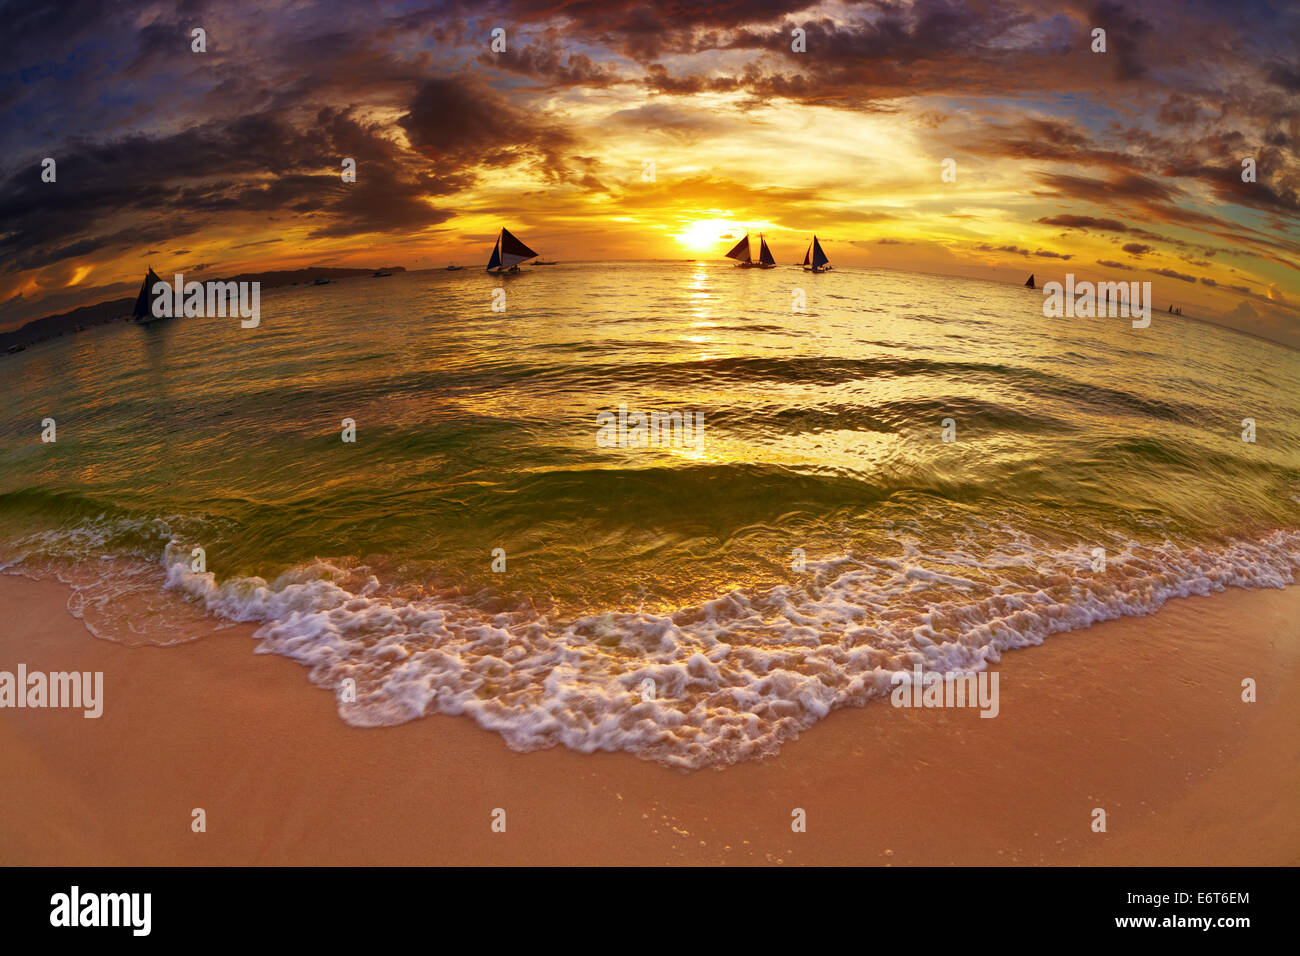 Playa Tropical al atardecer, isla de Boracay, Filipinas, fisheye shot Imagen De Stock